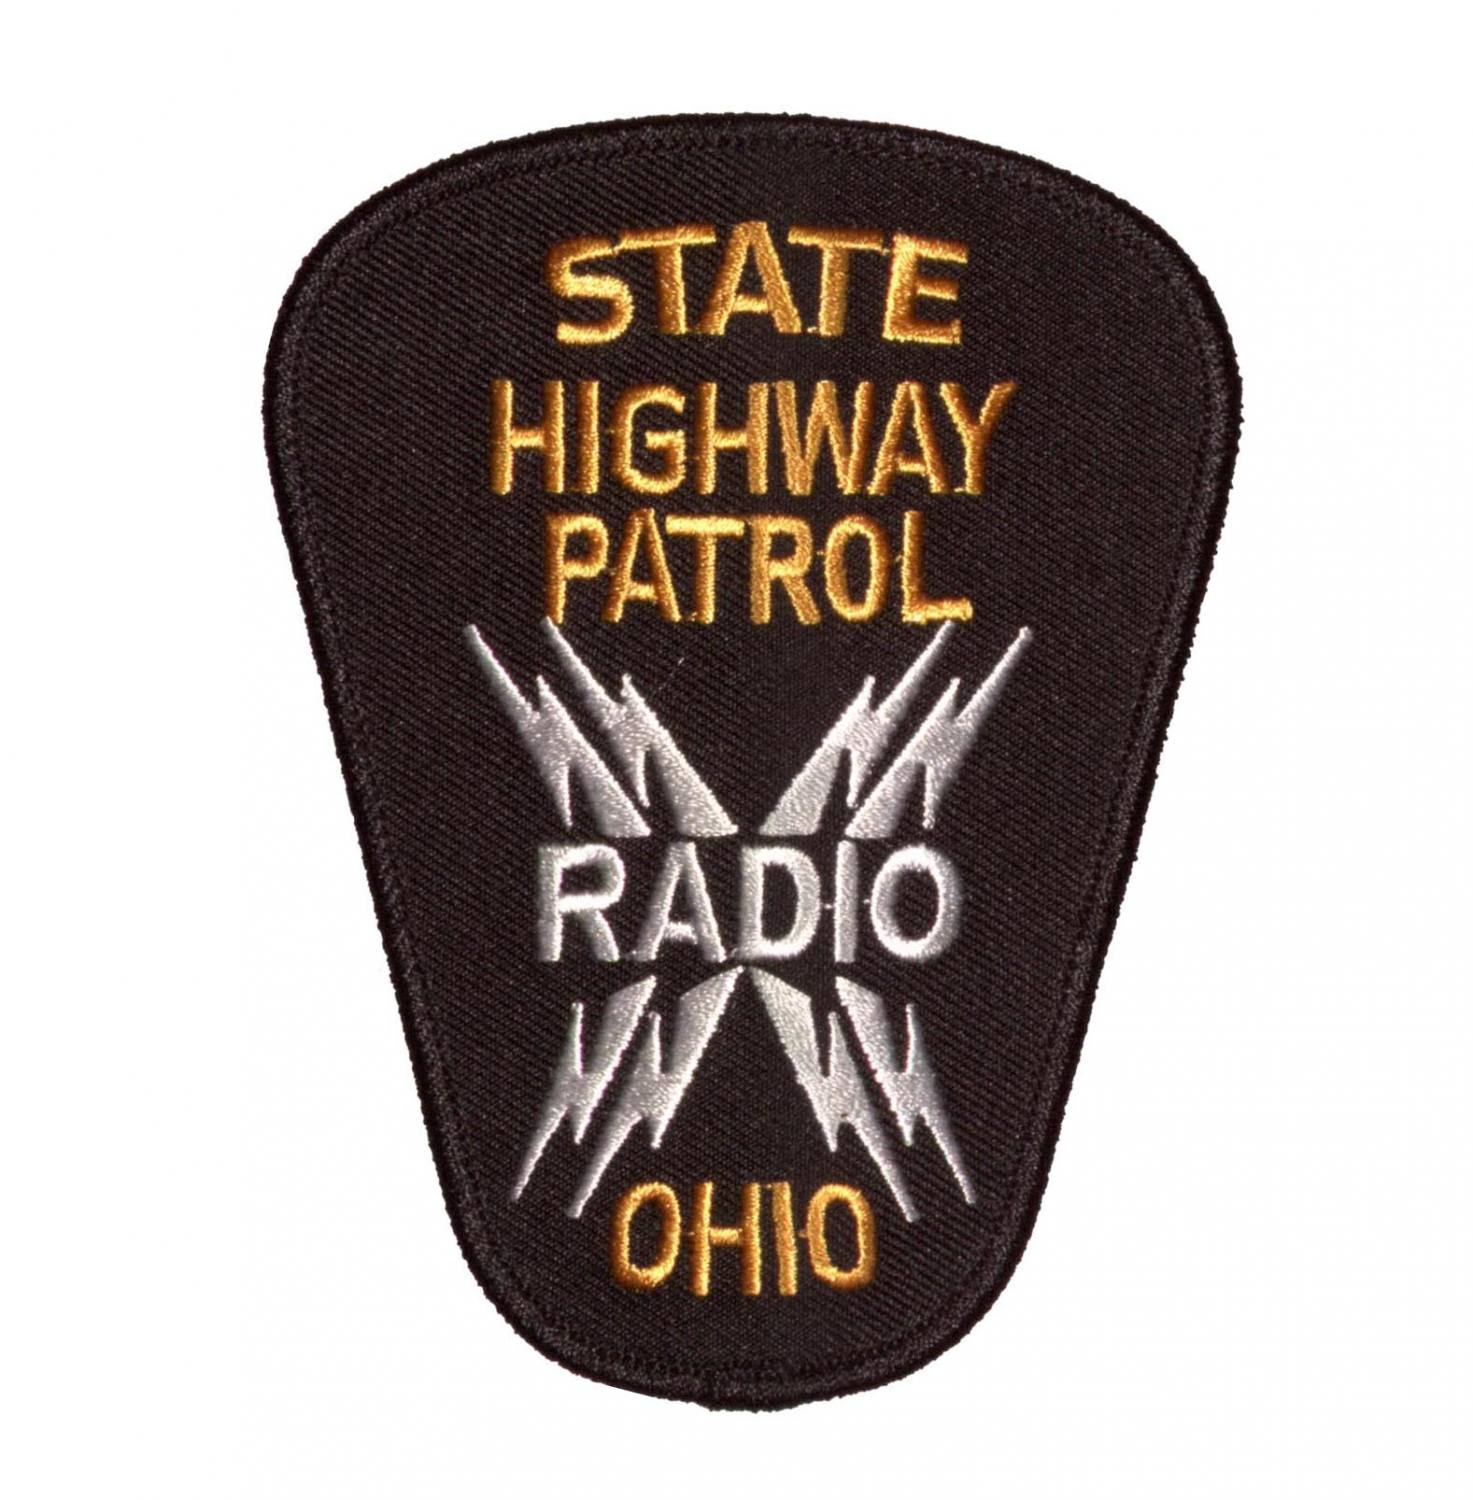 Highway patrol patches